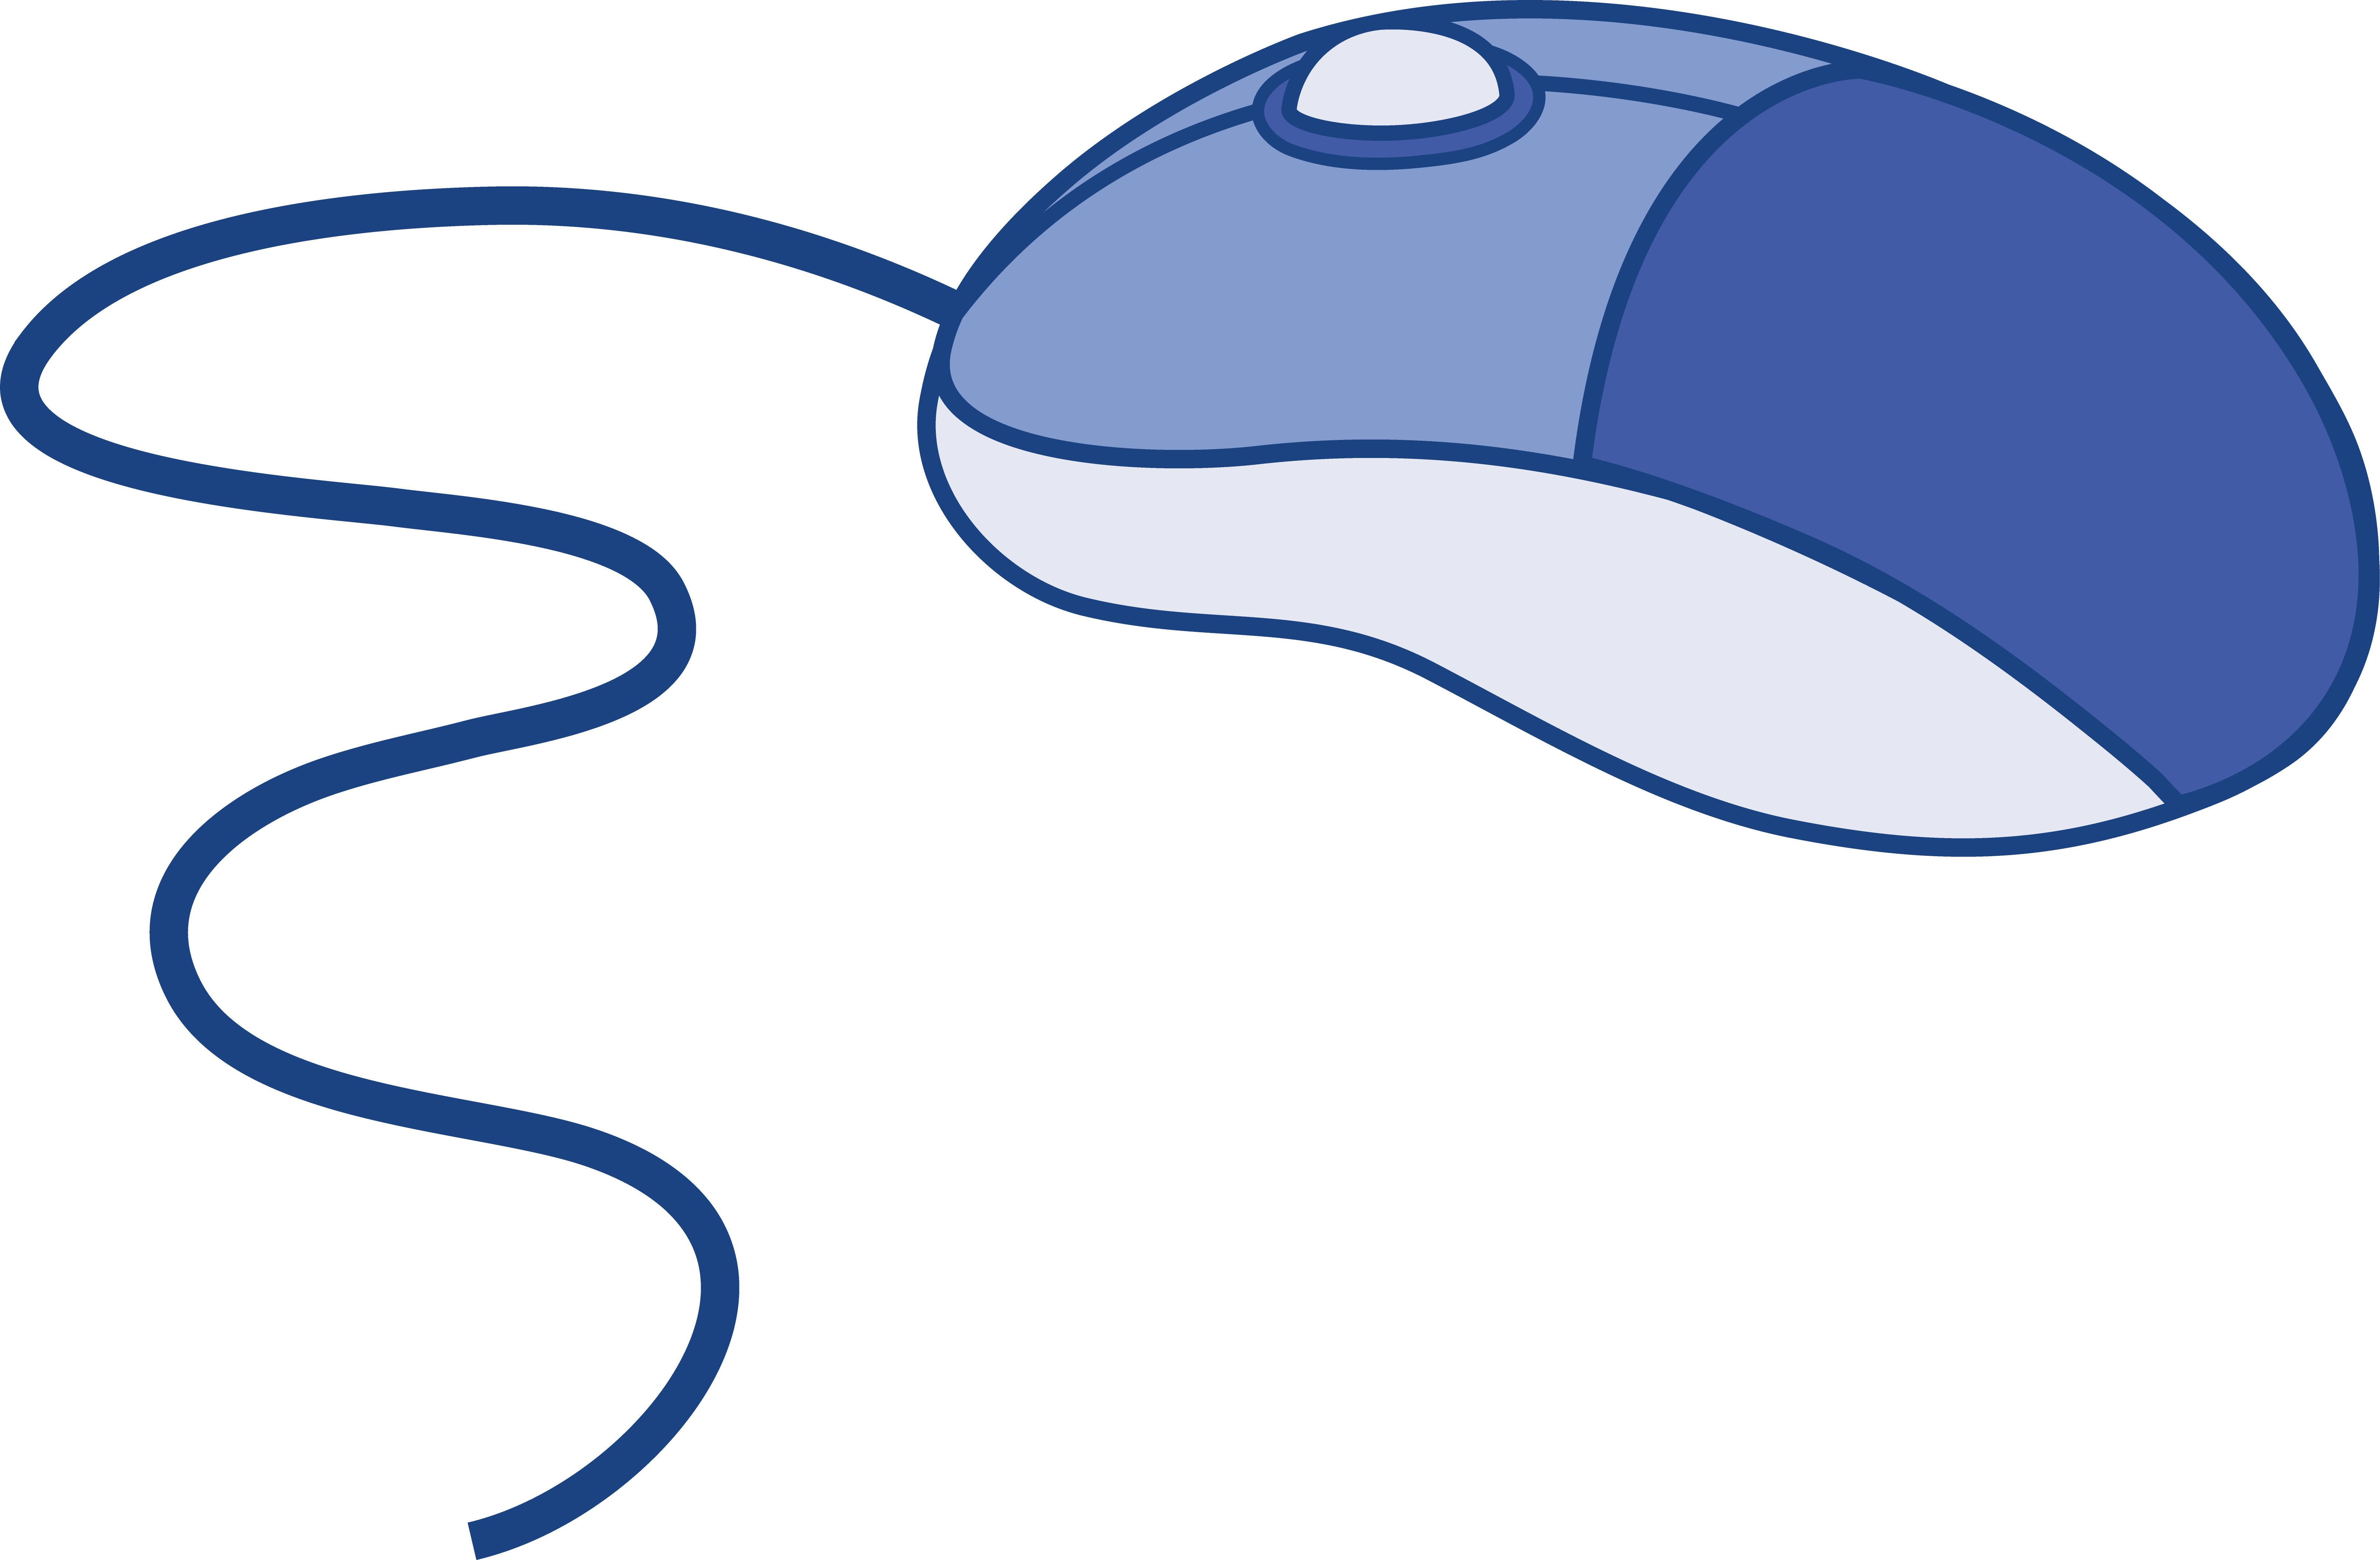 Computer Mouse PNG Images Transparent Free Download.